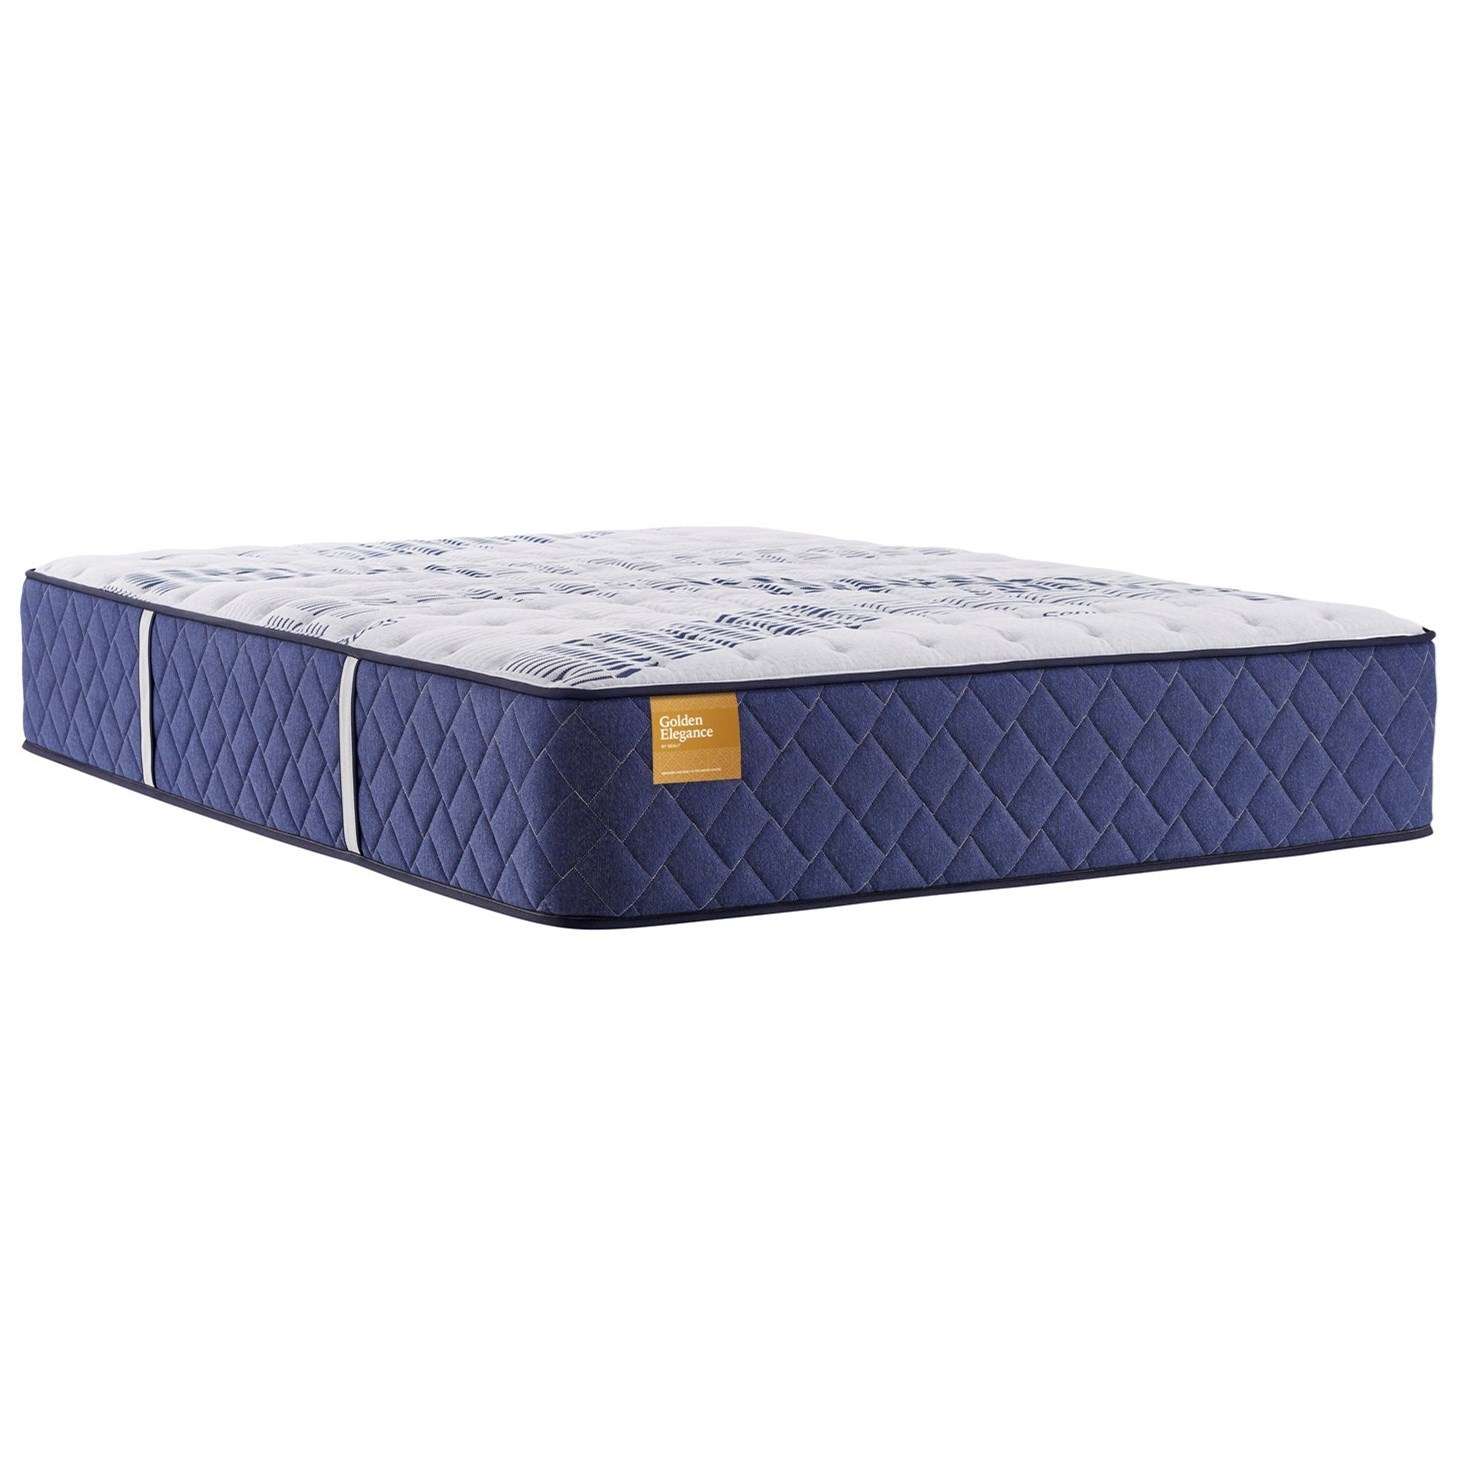 "Impeccable Grace Firm TT B6 King 14 1/2"" Firm TT Mattress by Sealy at Darvin Furniture"